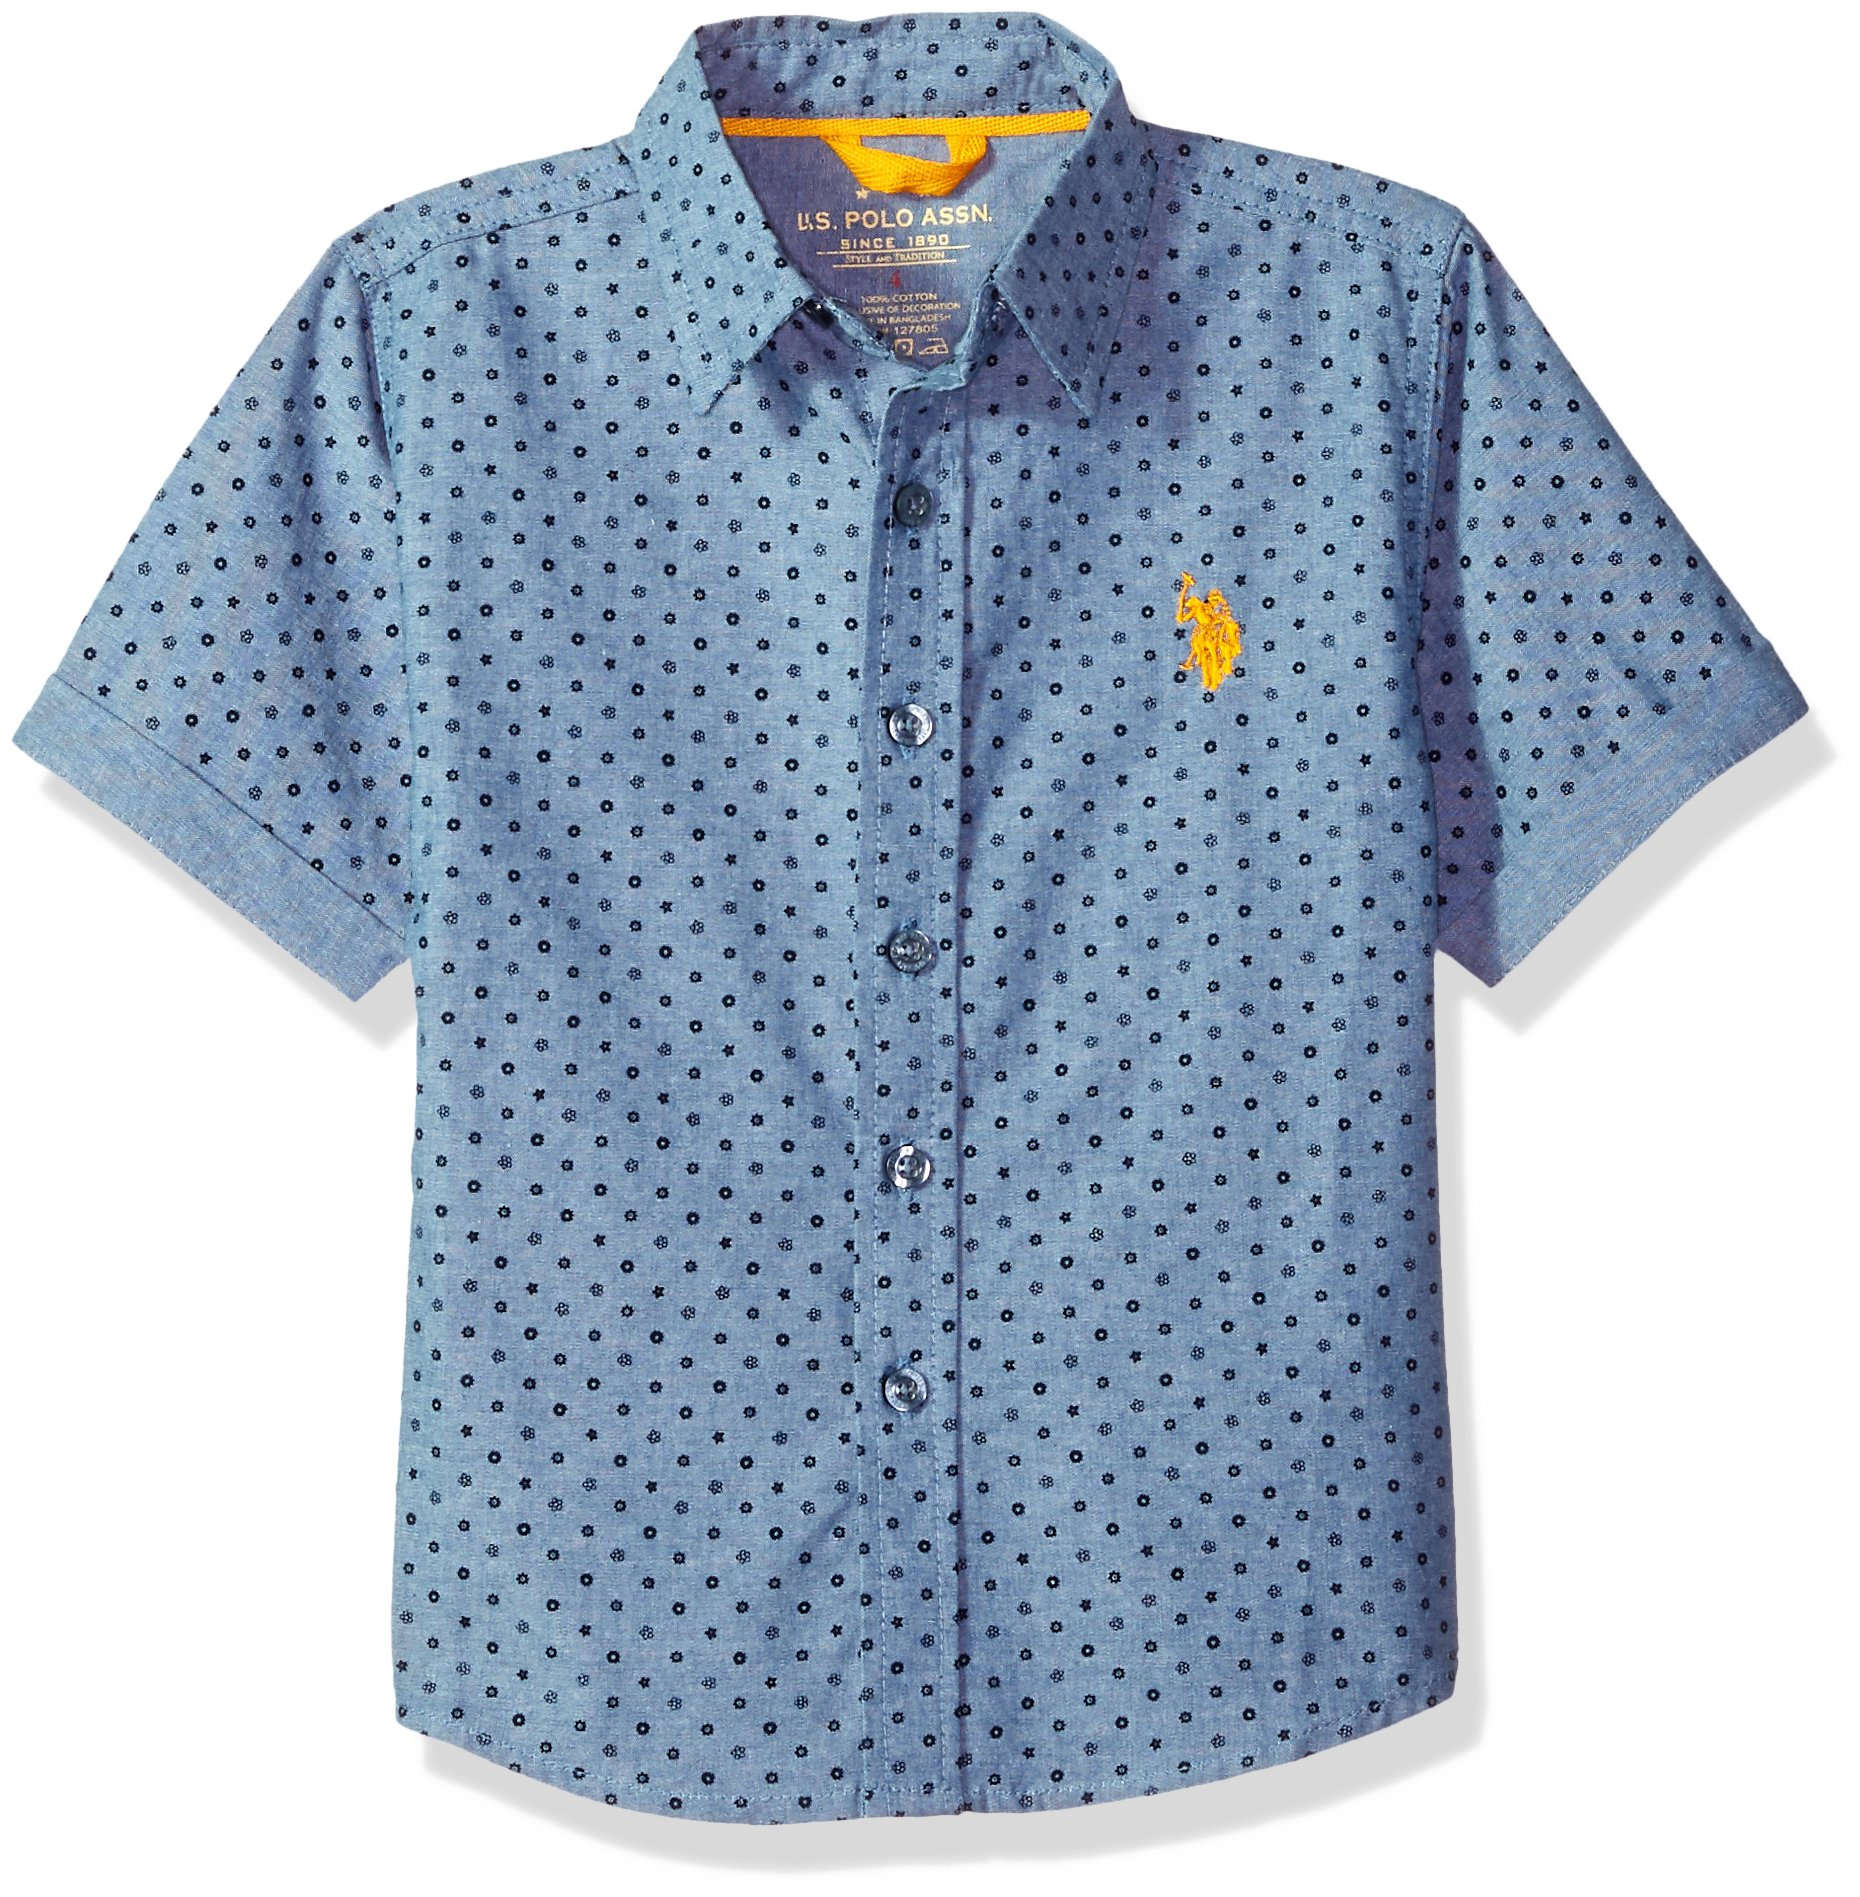 U.S. Polo Assn. Boys' Short Sleeve Fancy Sport Shirt